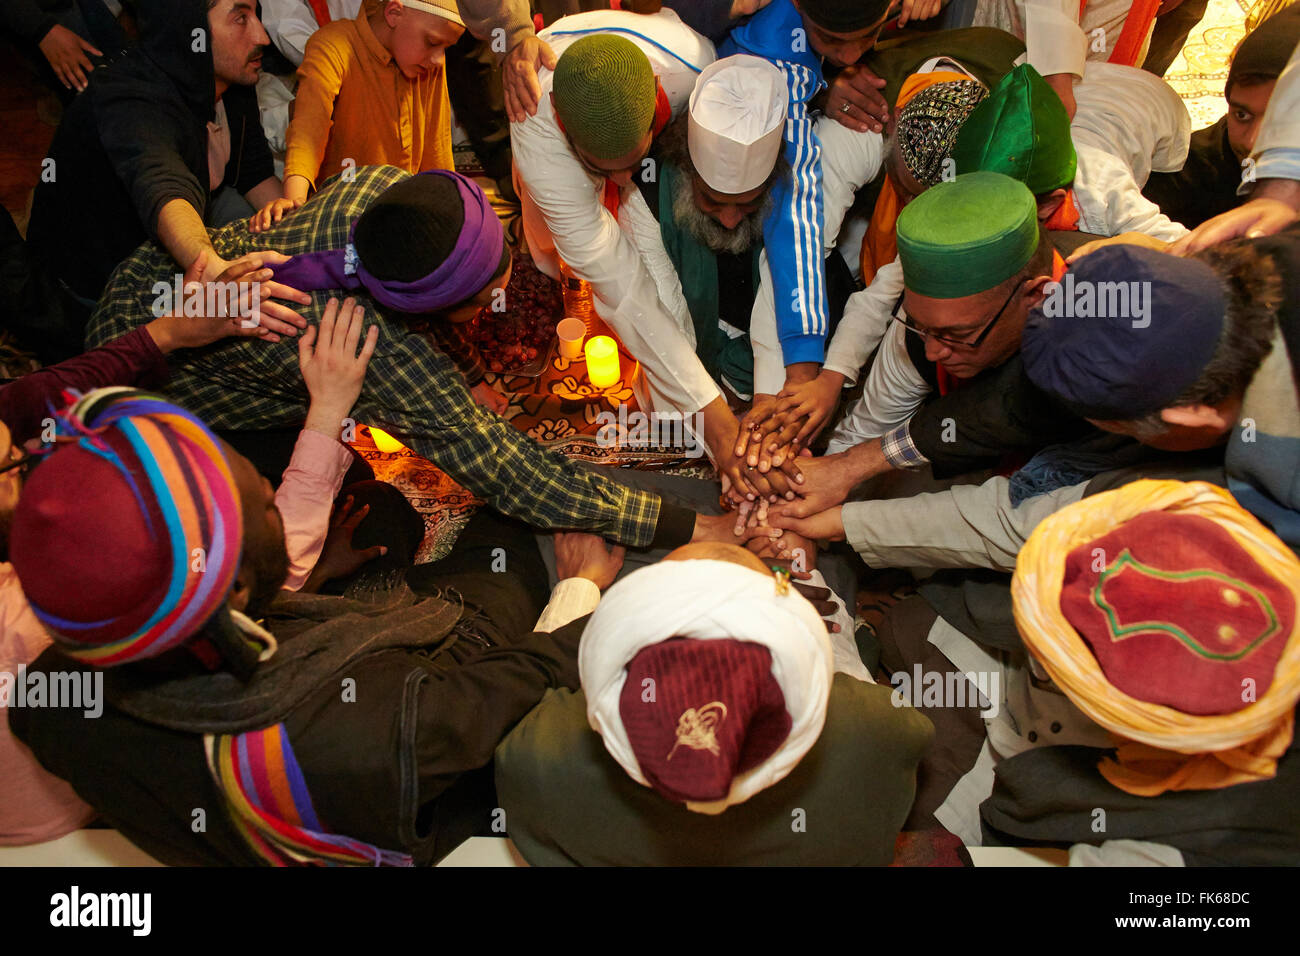 Naqshbandi Sufis joining hands, Paris, France, Europe - Stock Image